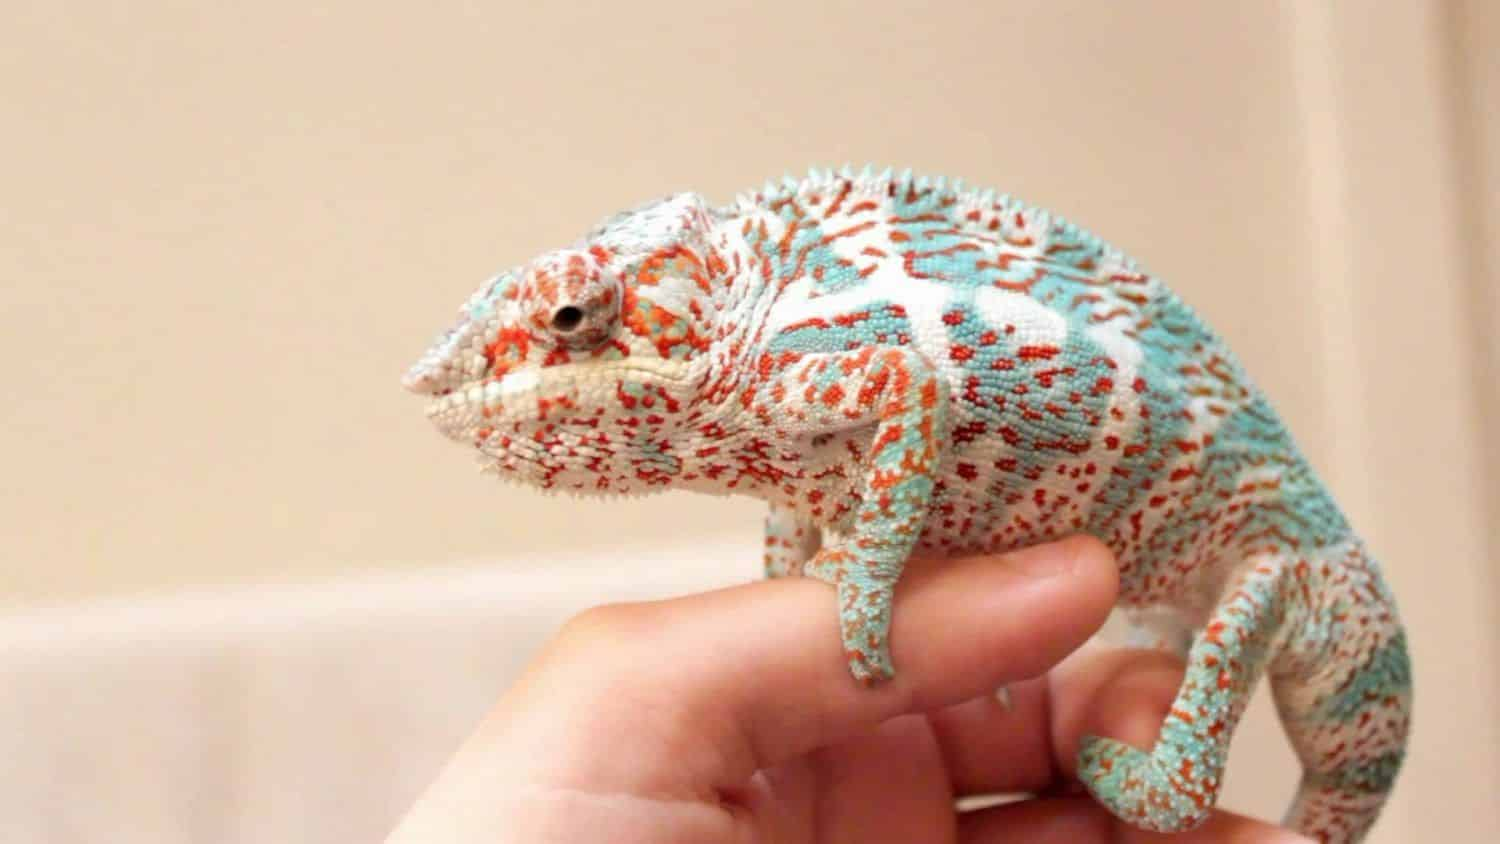 Nosy Faly Panther Chameleon For Sale Online Nosy Faly